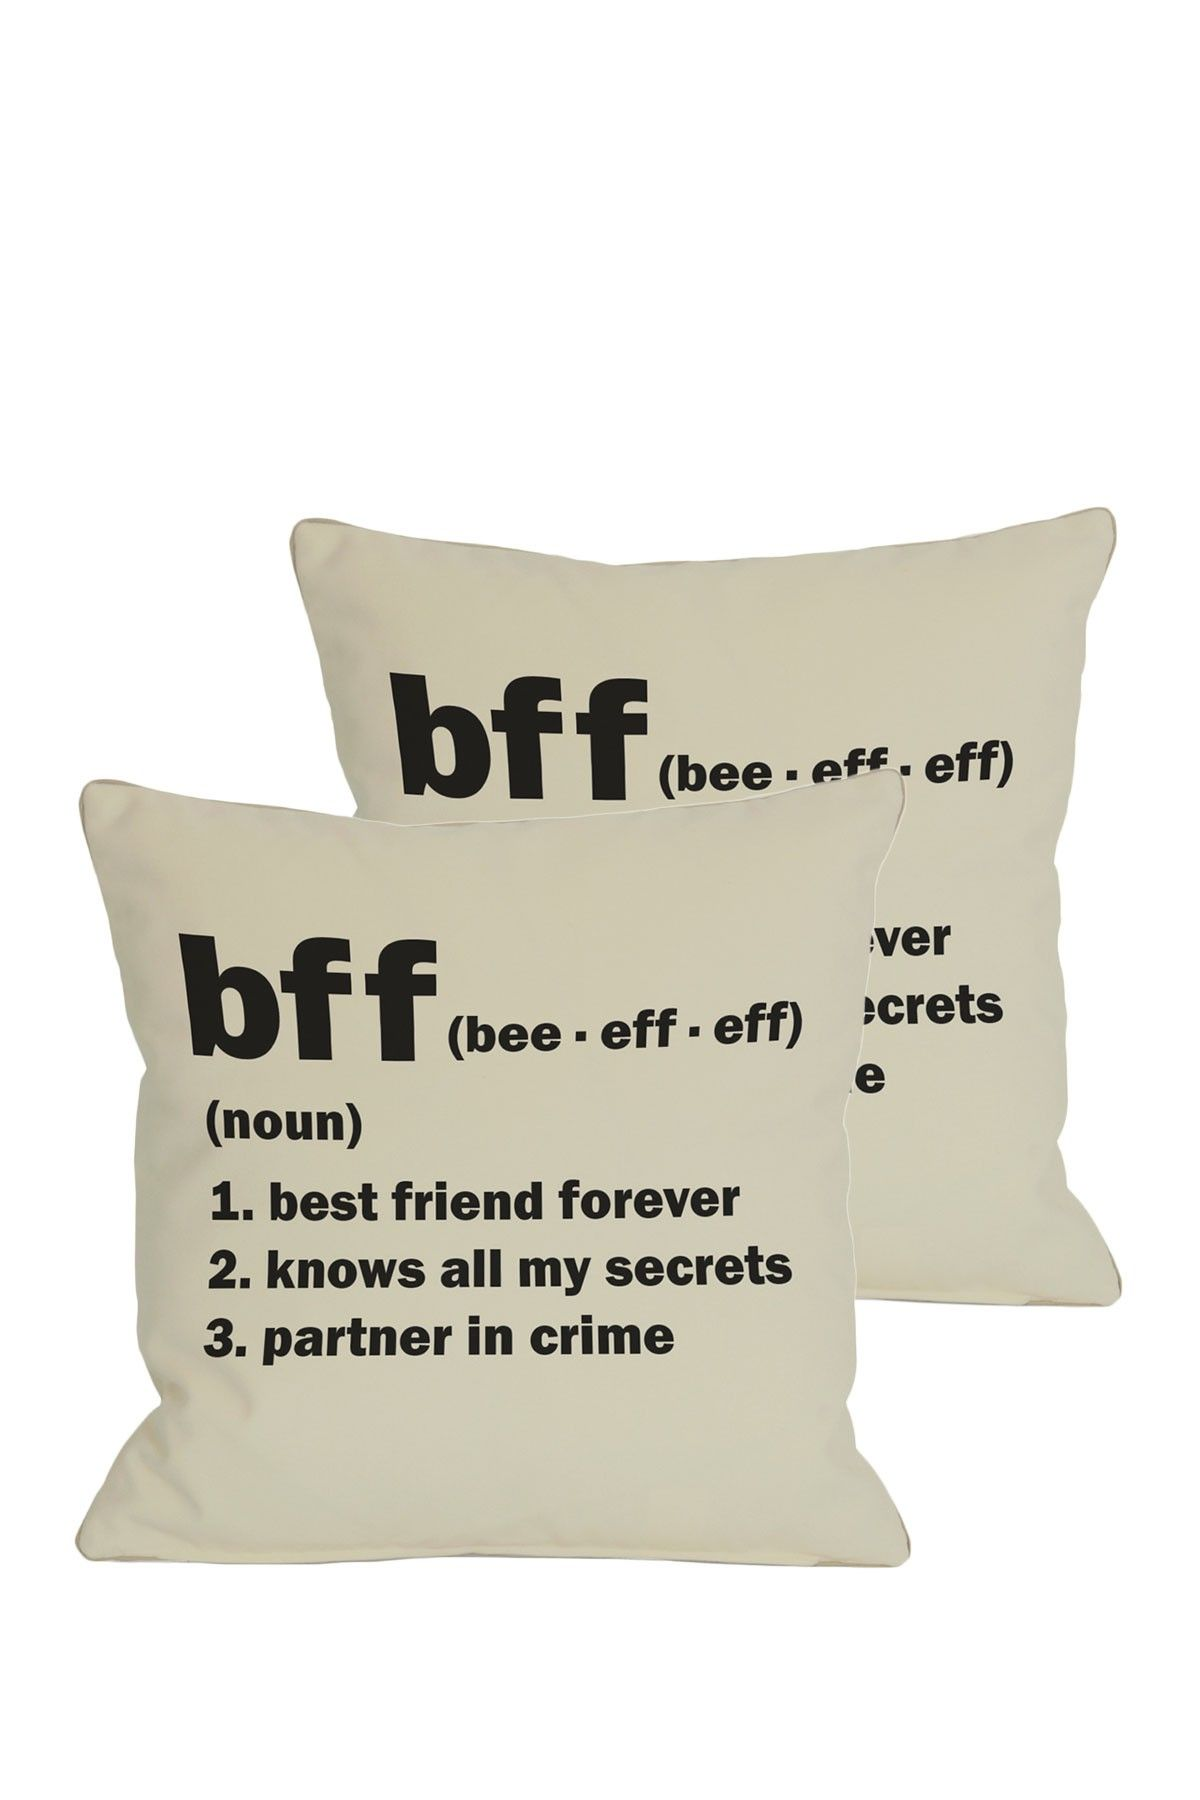 BFF Definition Pillows Set of 2